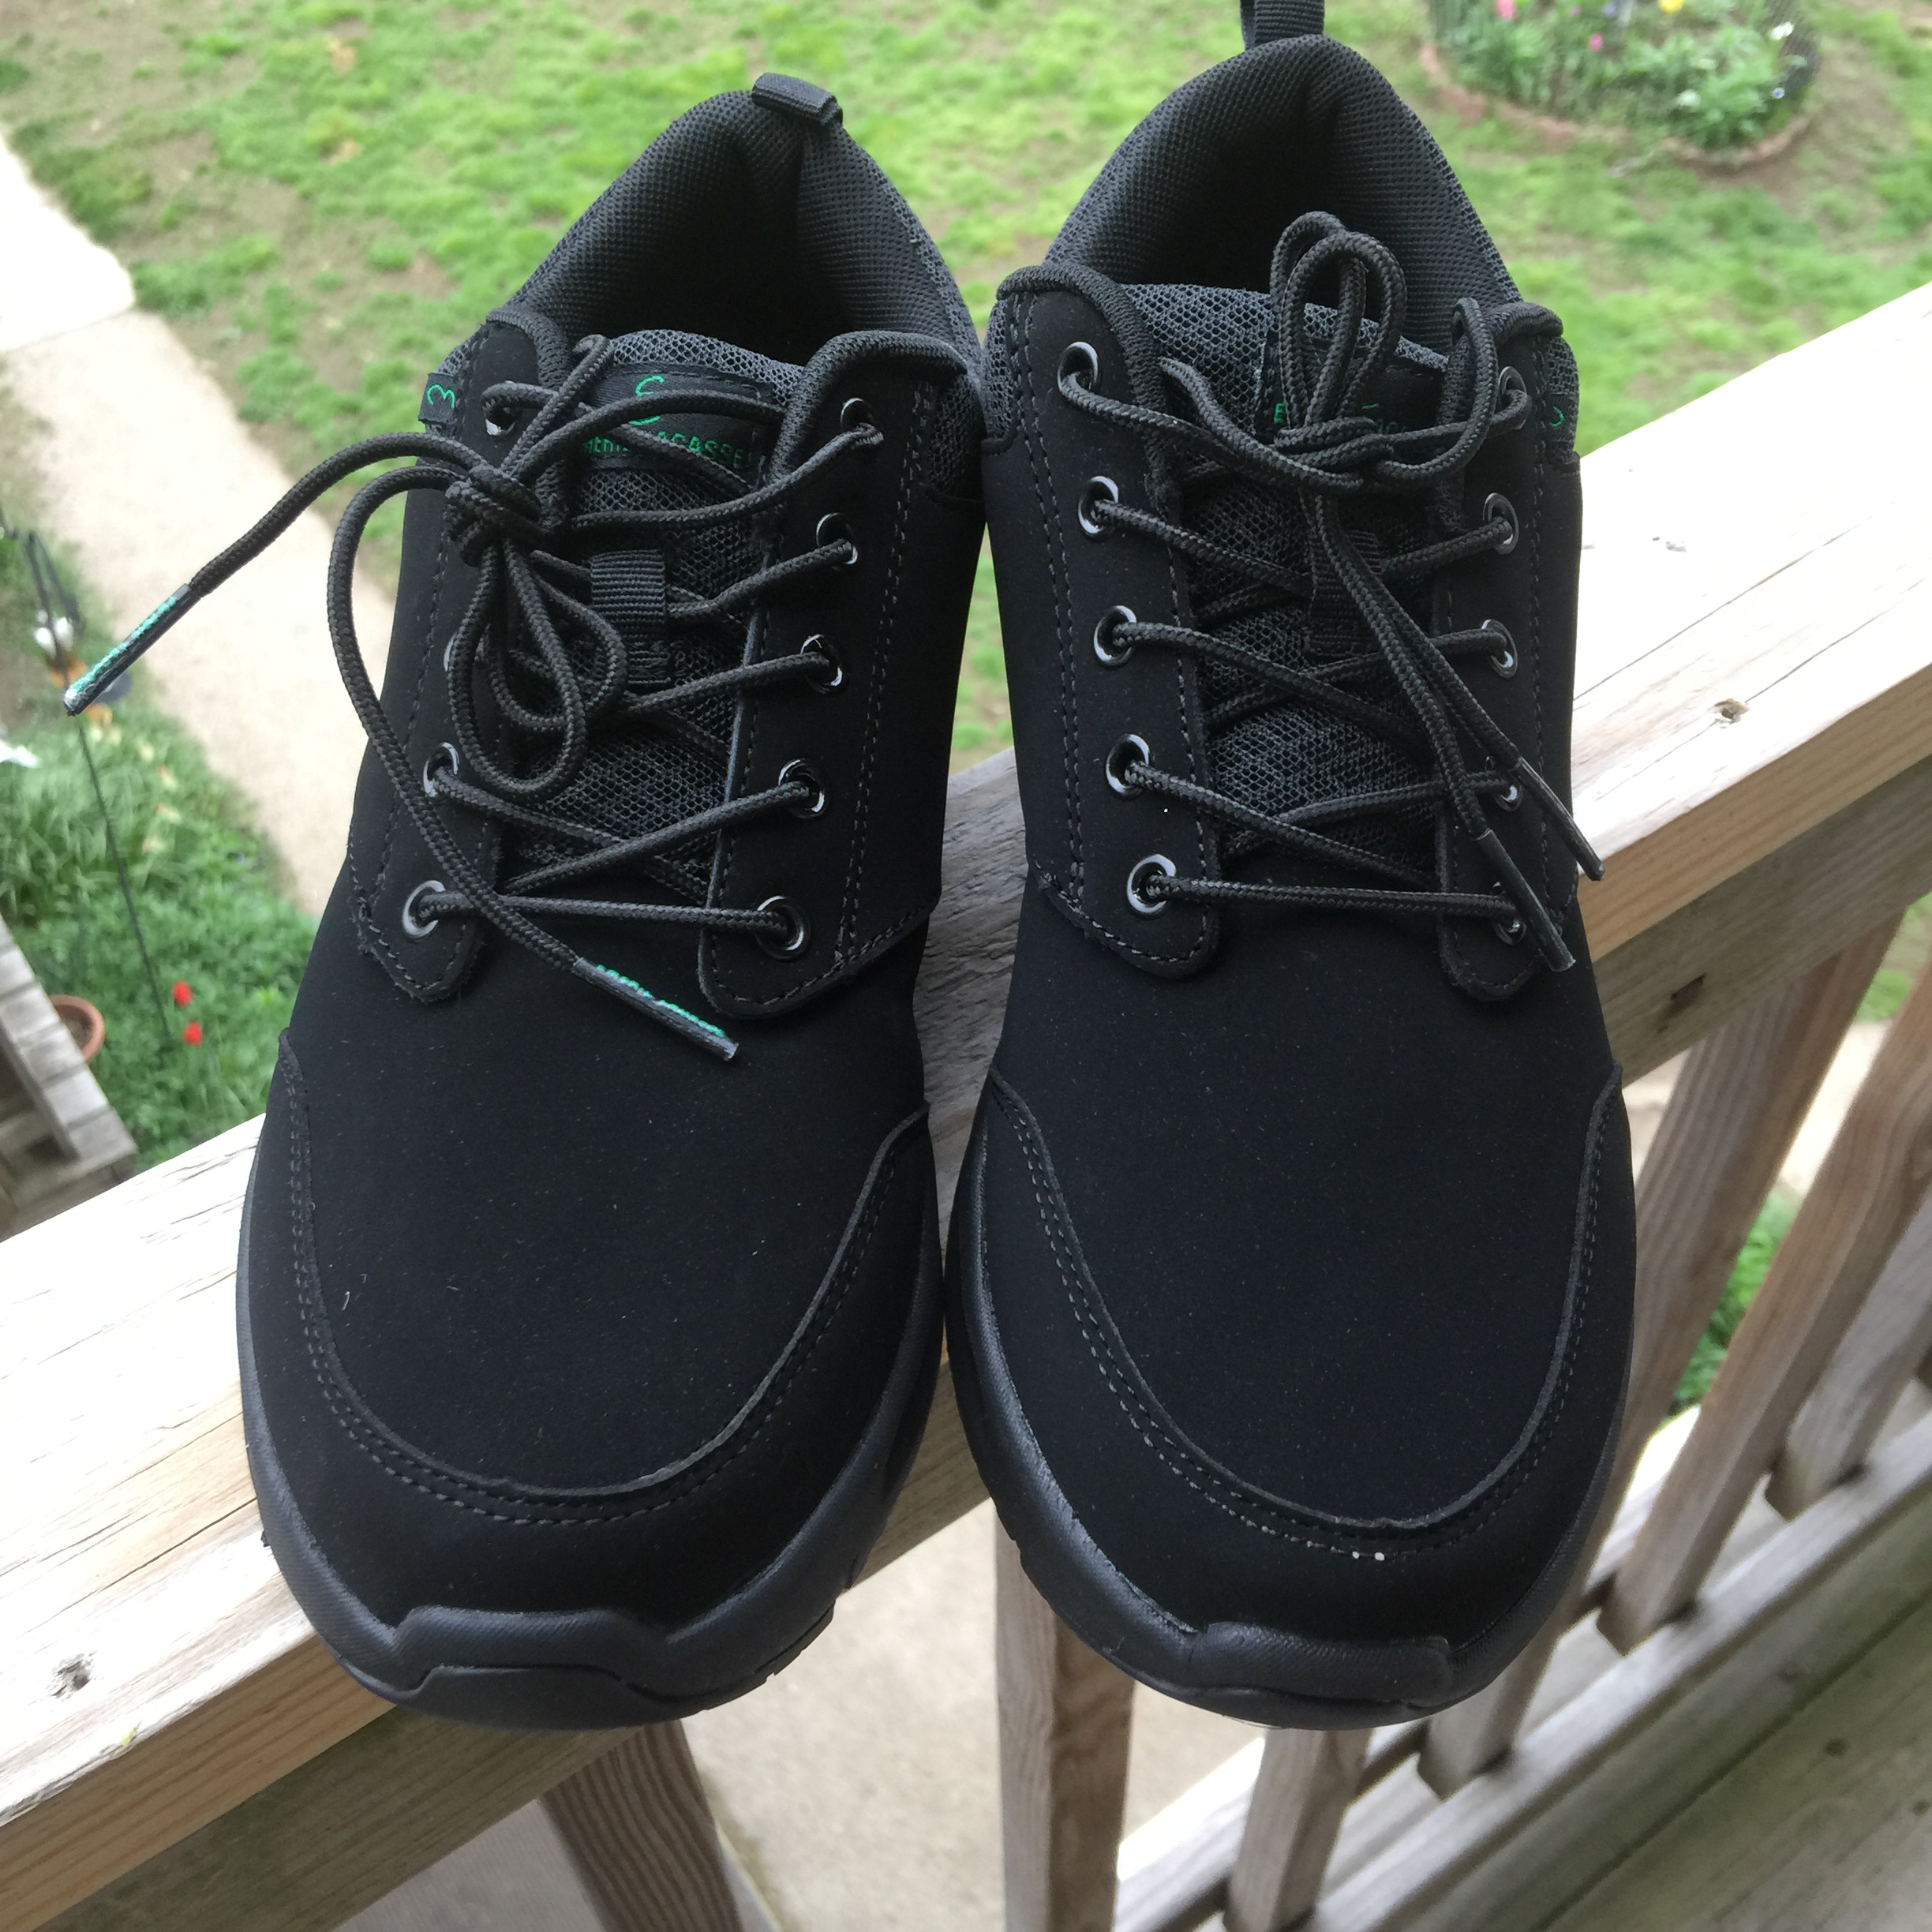 Slip Resistant Emeril Footwear Women's Quarter Nubuck